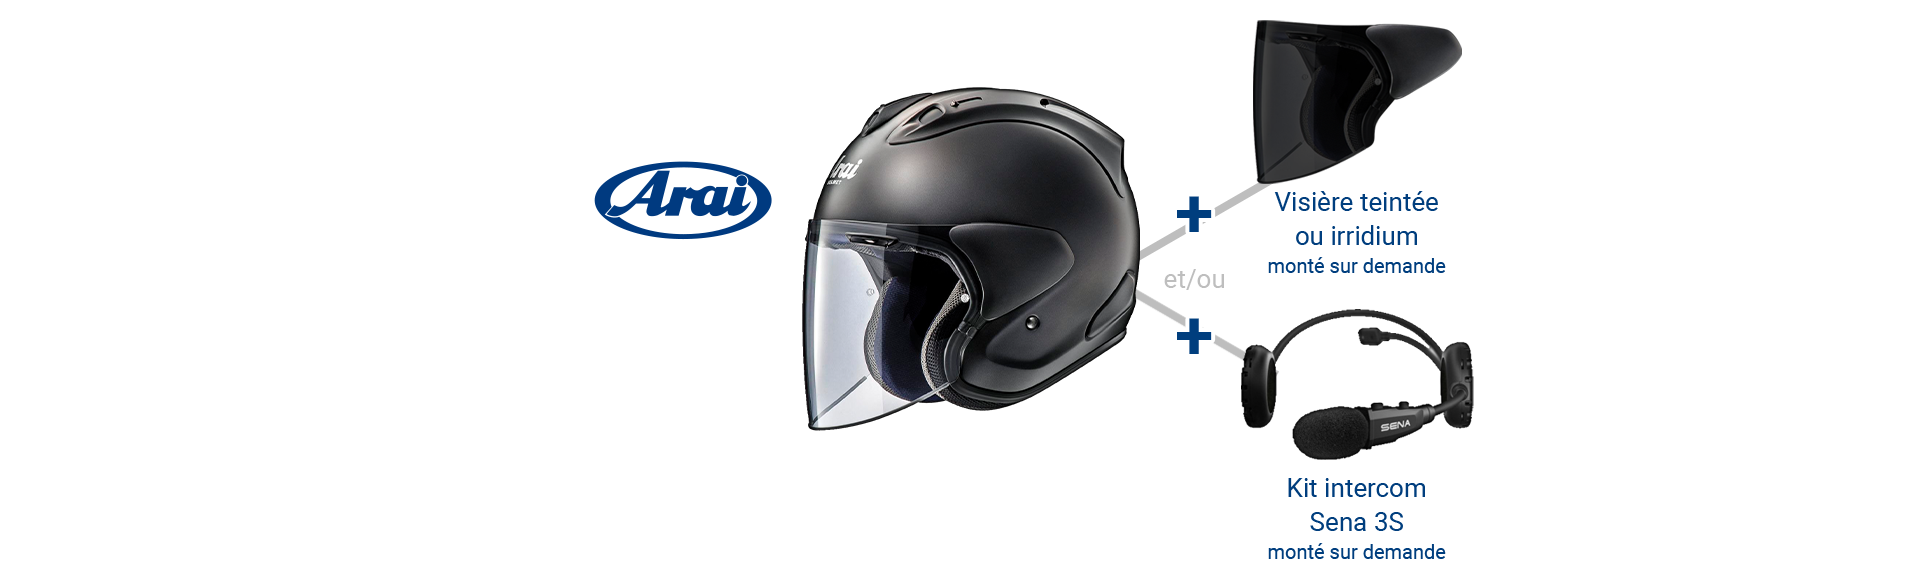 SLIDE-PACK-ARAI-mob-2